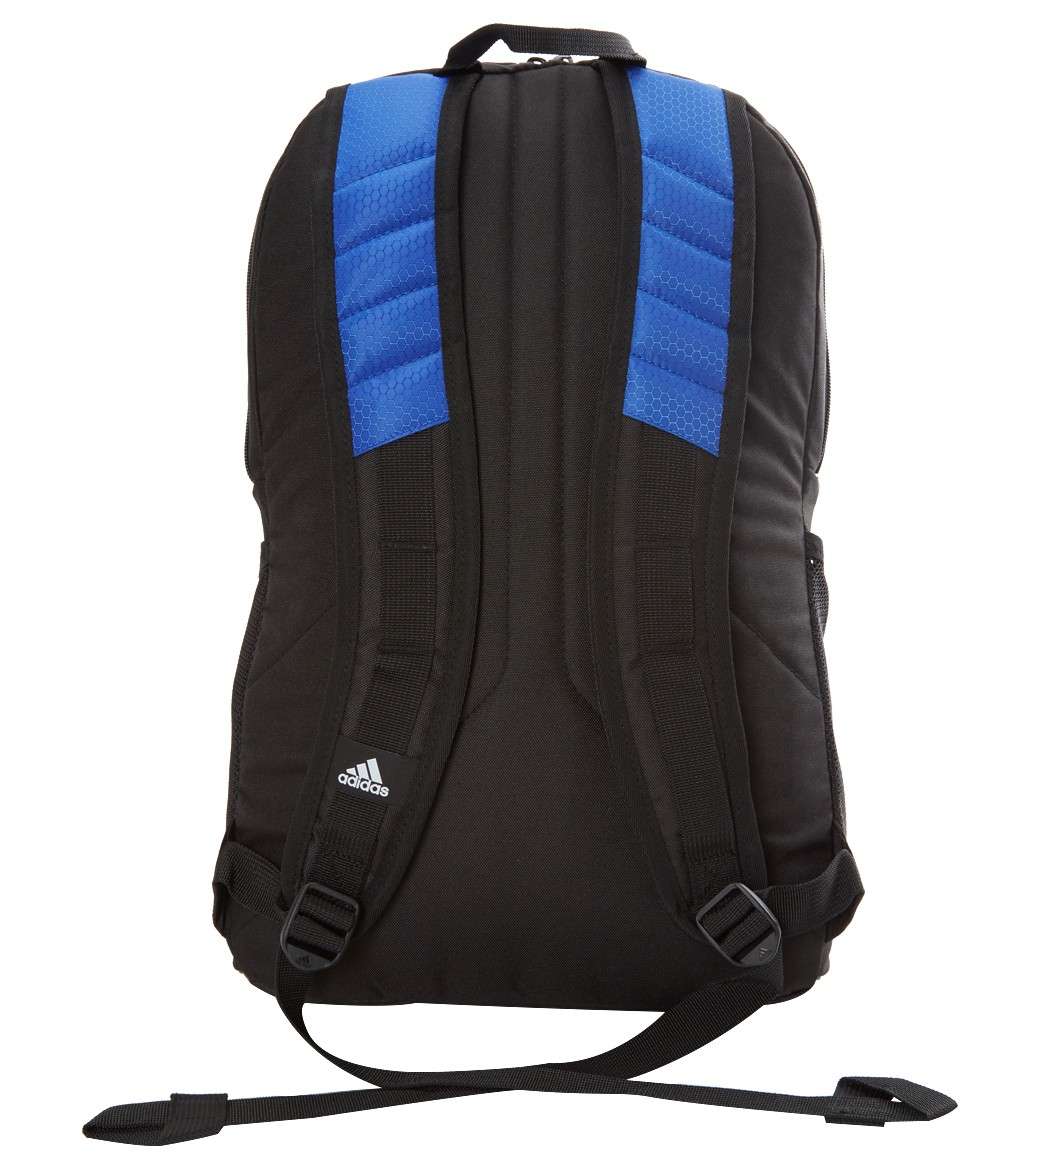 e89fe713558 Adidas Stadium II Backpack C3000X at SwimOutlet.com - Free Shipping